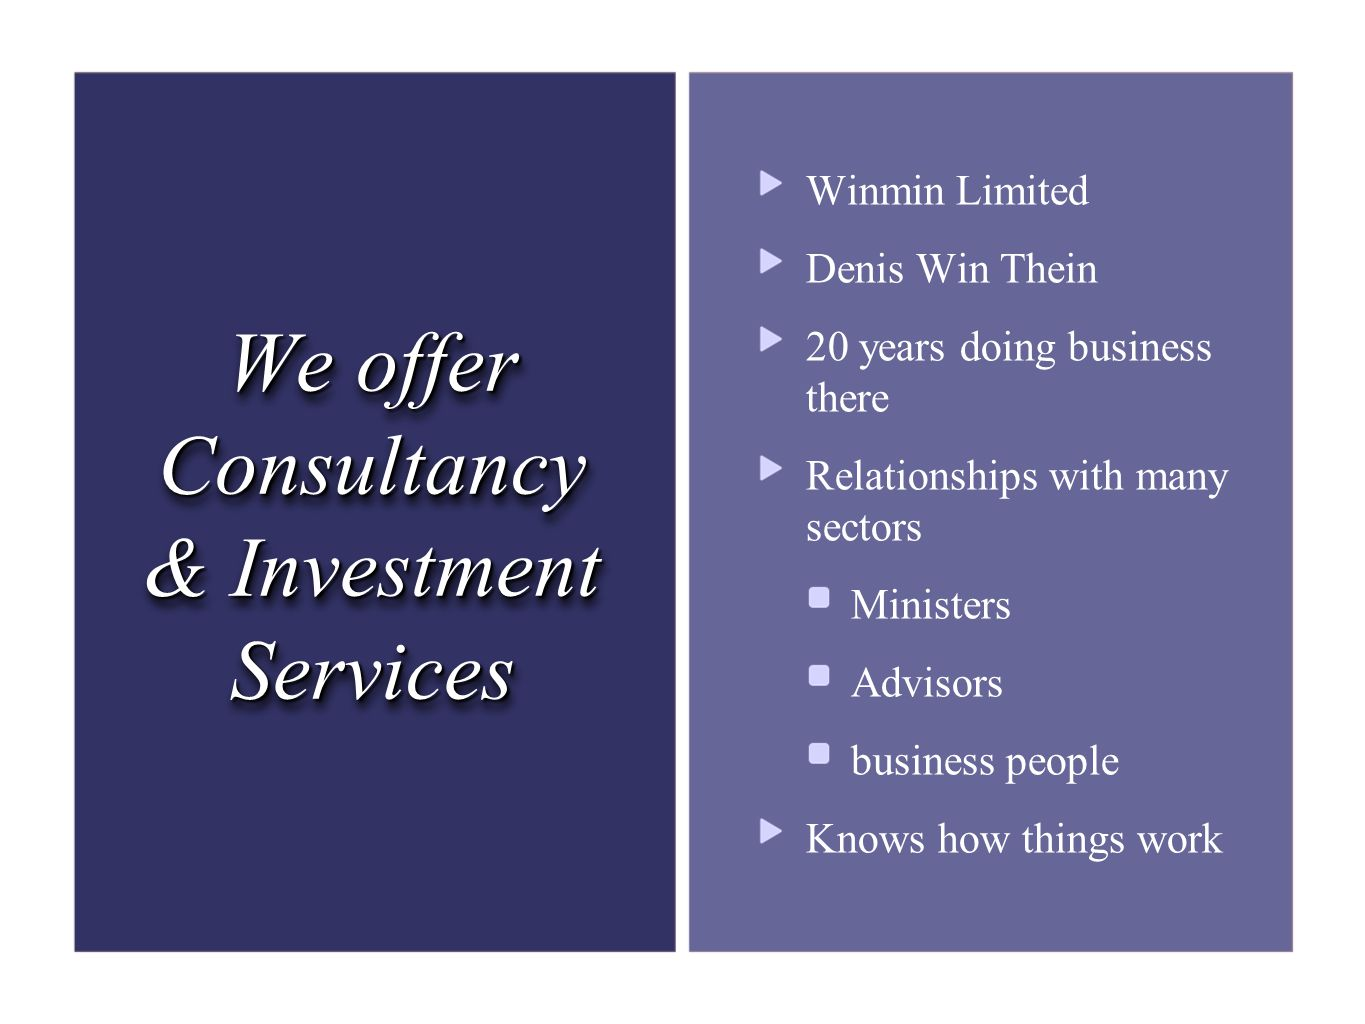 We offer Consultancy & Investment Services Winmin Limited Denis Win Thein 20 years doing business there Relationships with many sectors Ministers Advisors business people Knows how things work